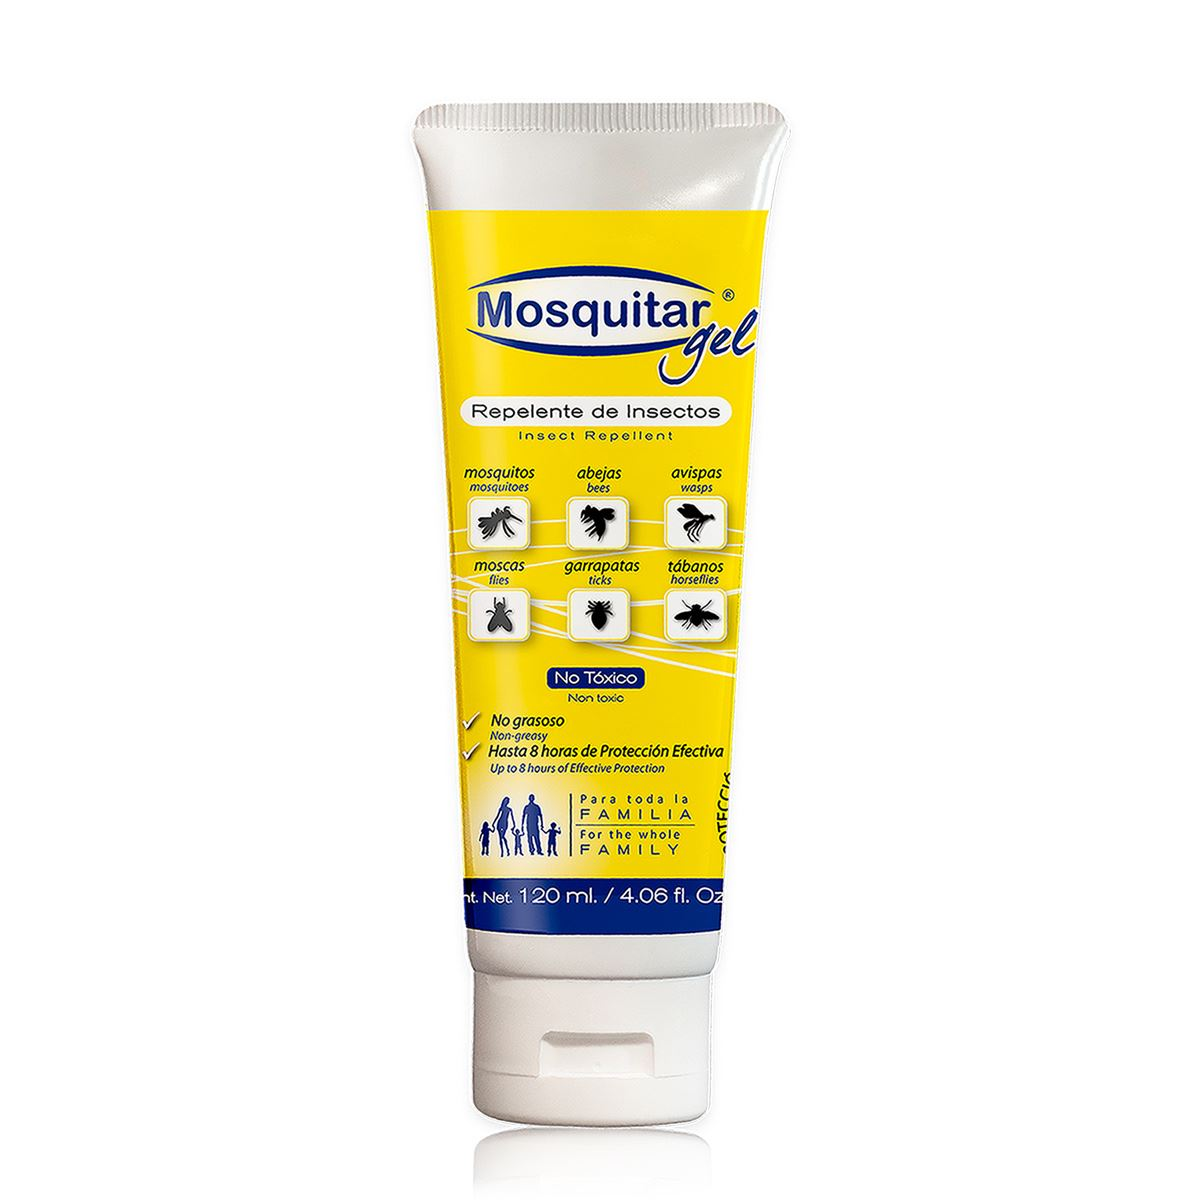 Repelente gel mosquitar  - Sanborns